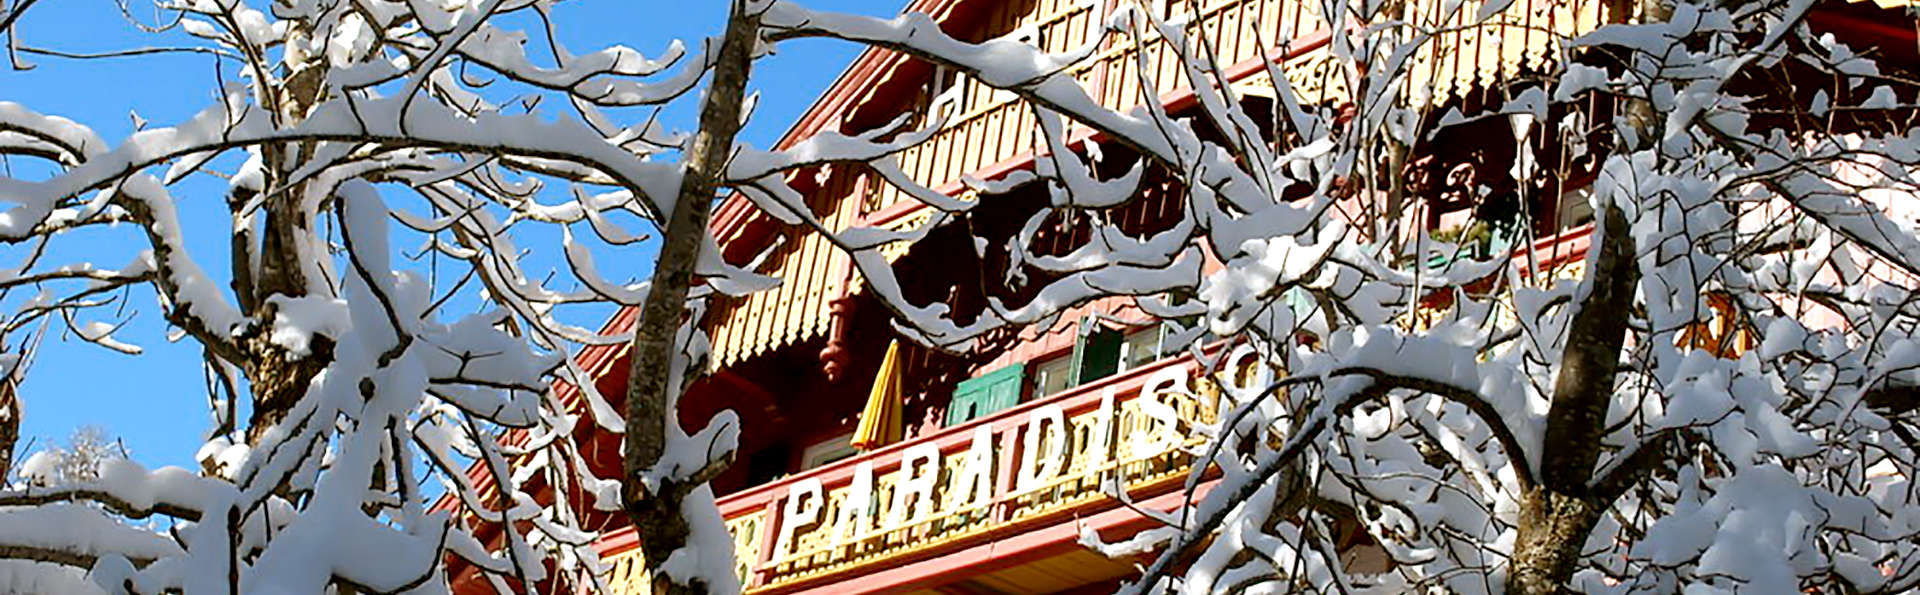 Parkhotel Sole Paradiso - Edit_Front2.jpg